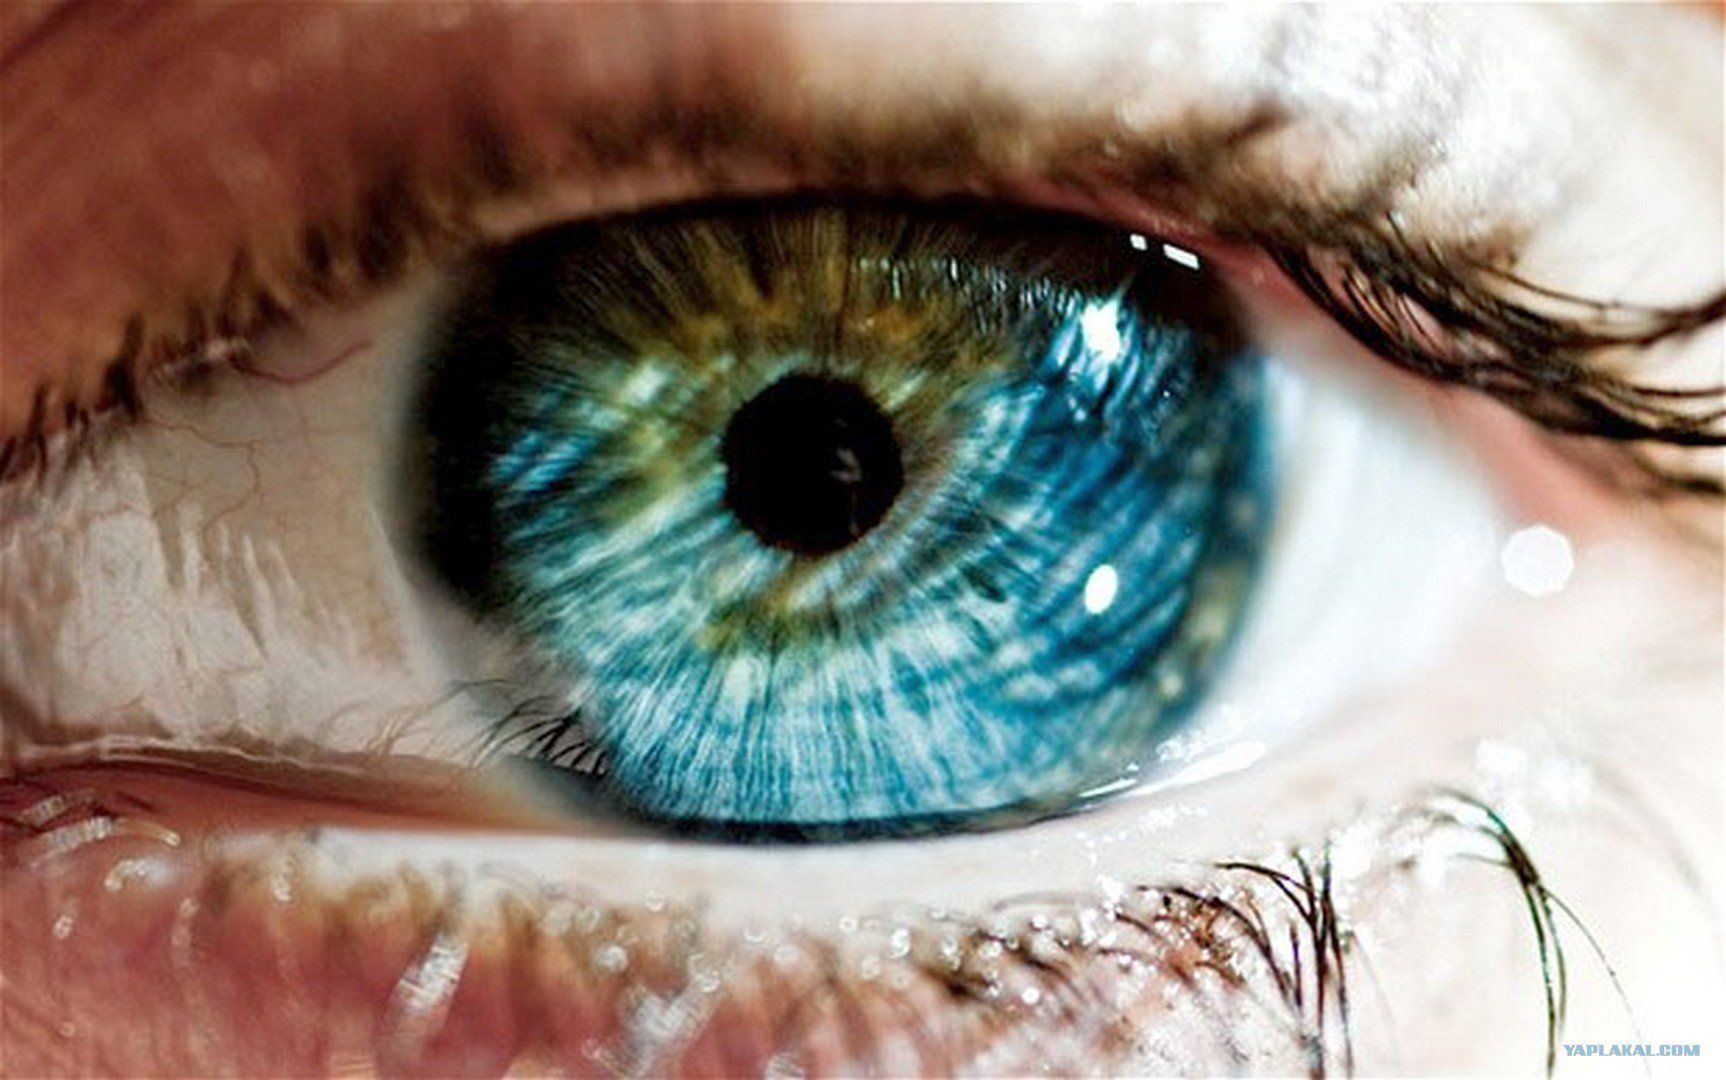 Science your eye color reveals a lot about you the mind eye nvjuhfo Gallery